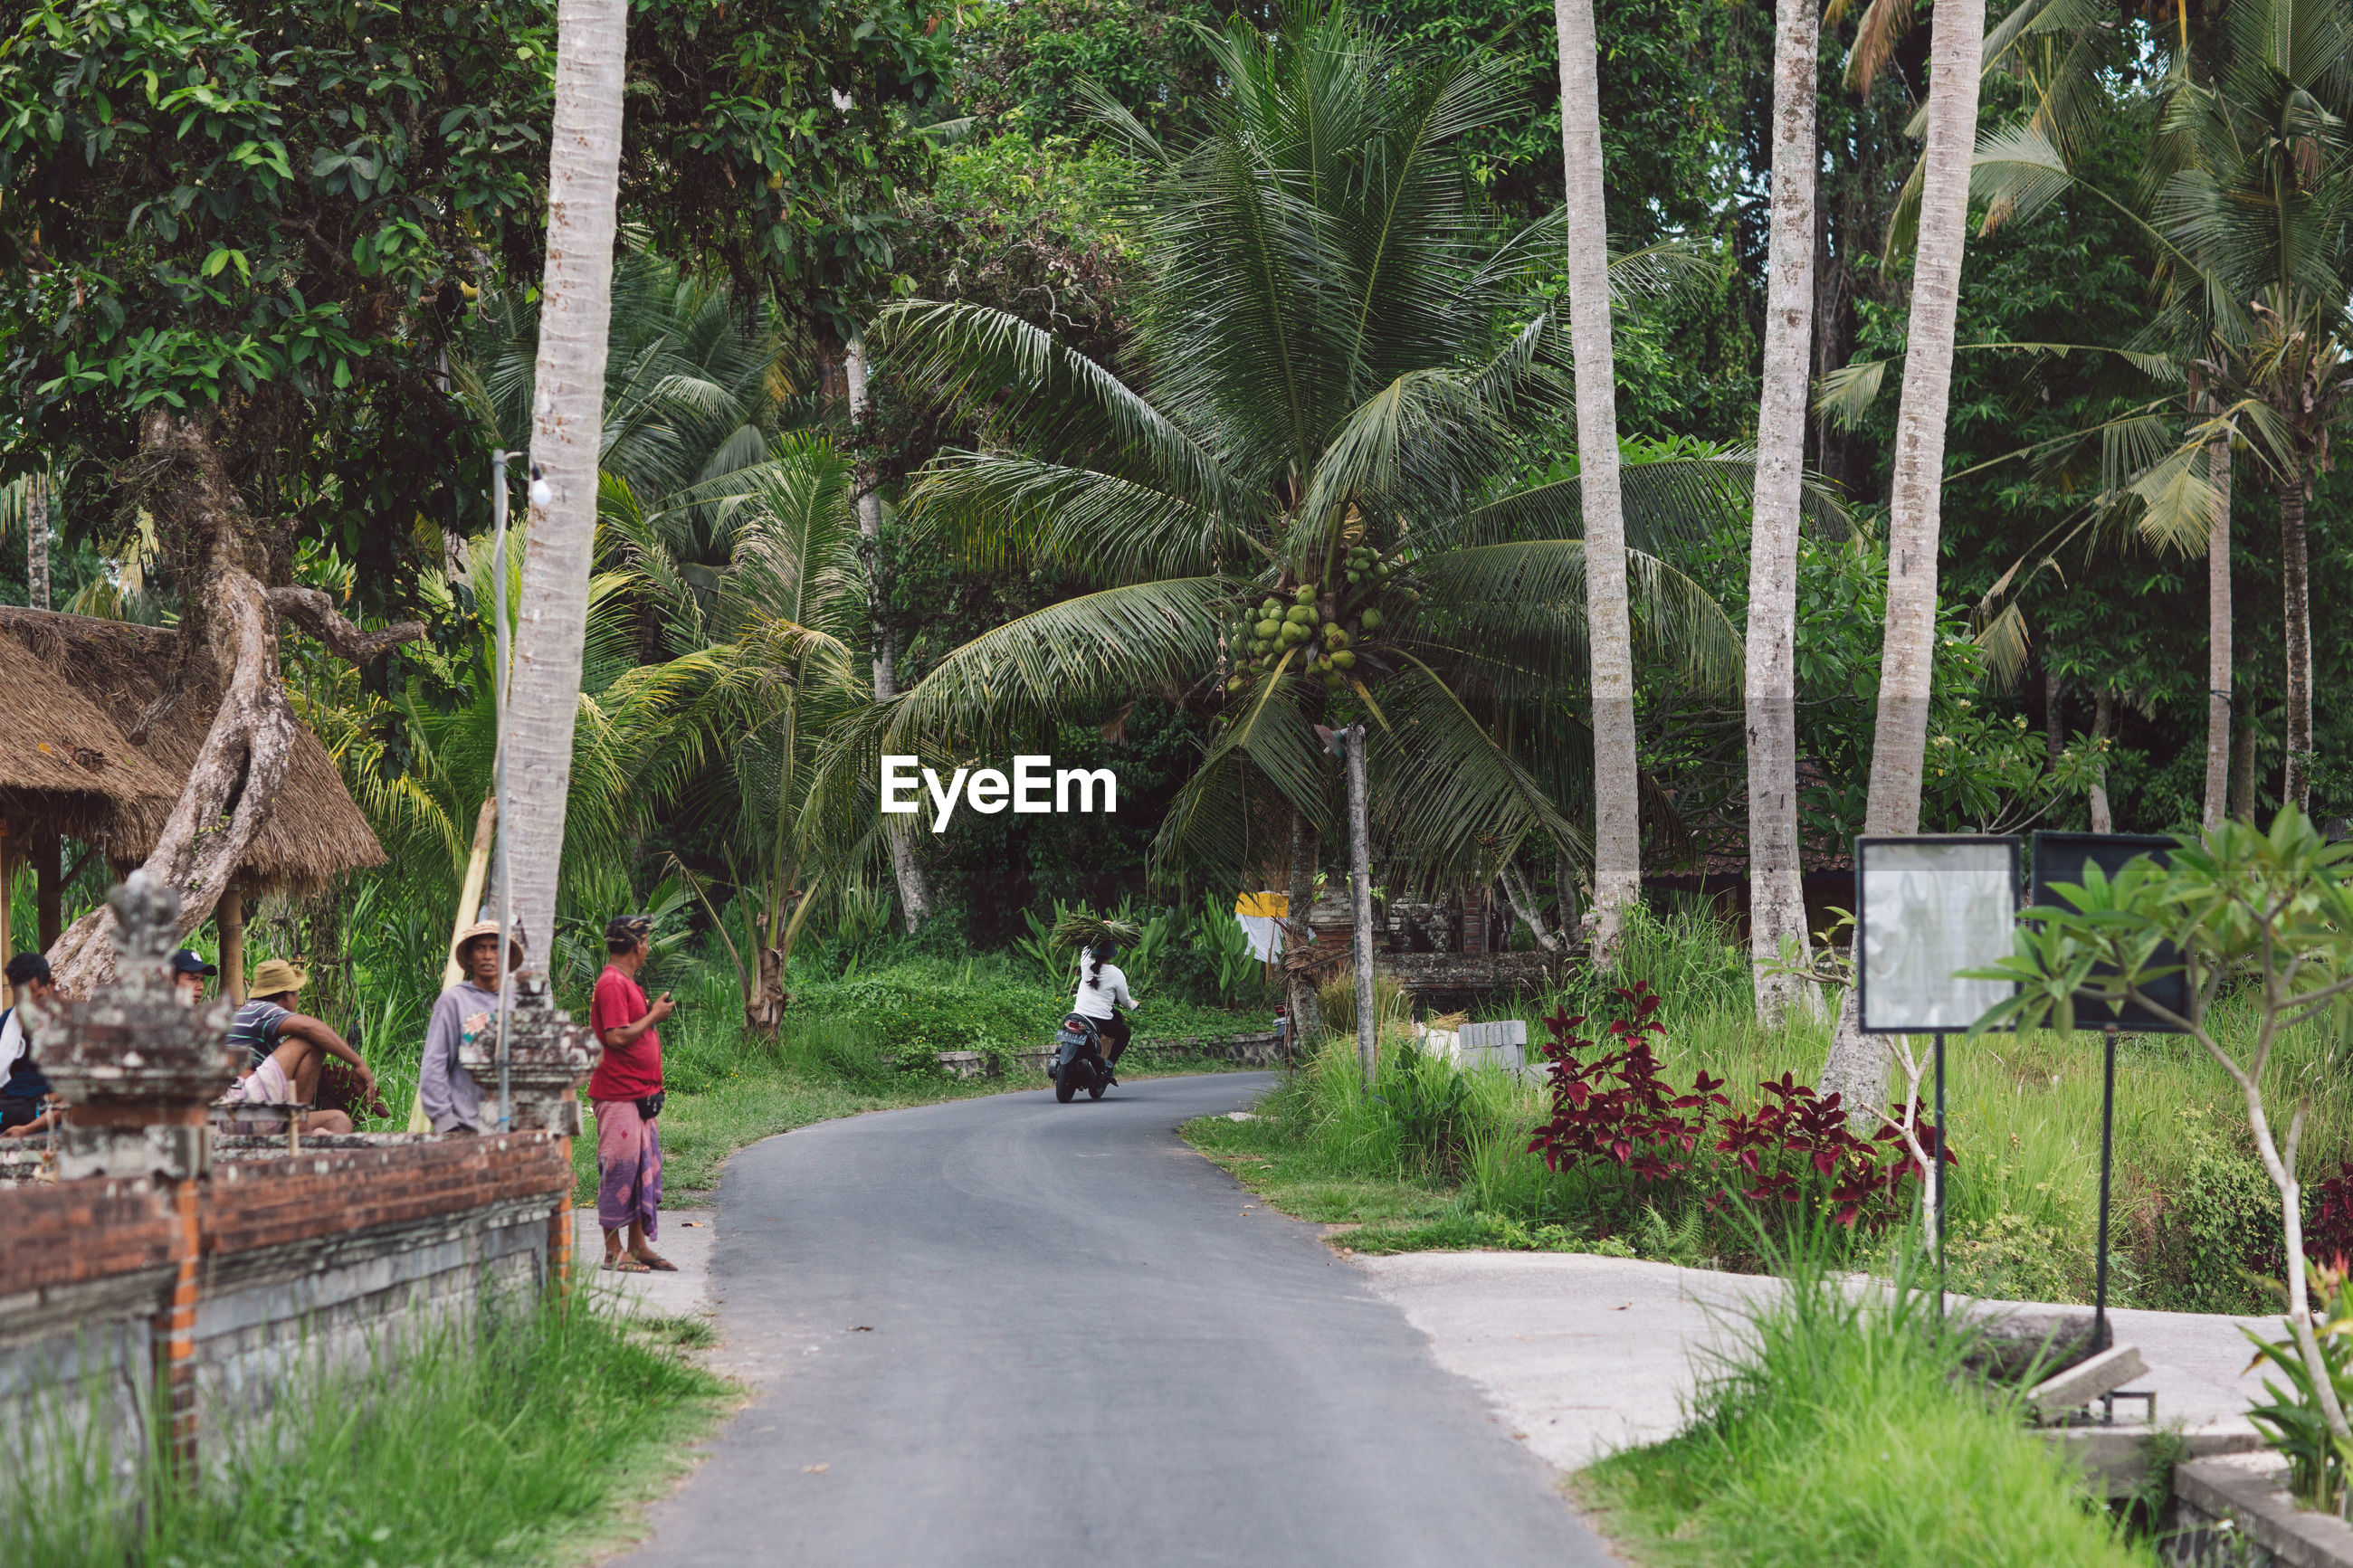 PEOPLE BY PALM TREES ON ROAD